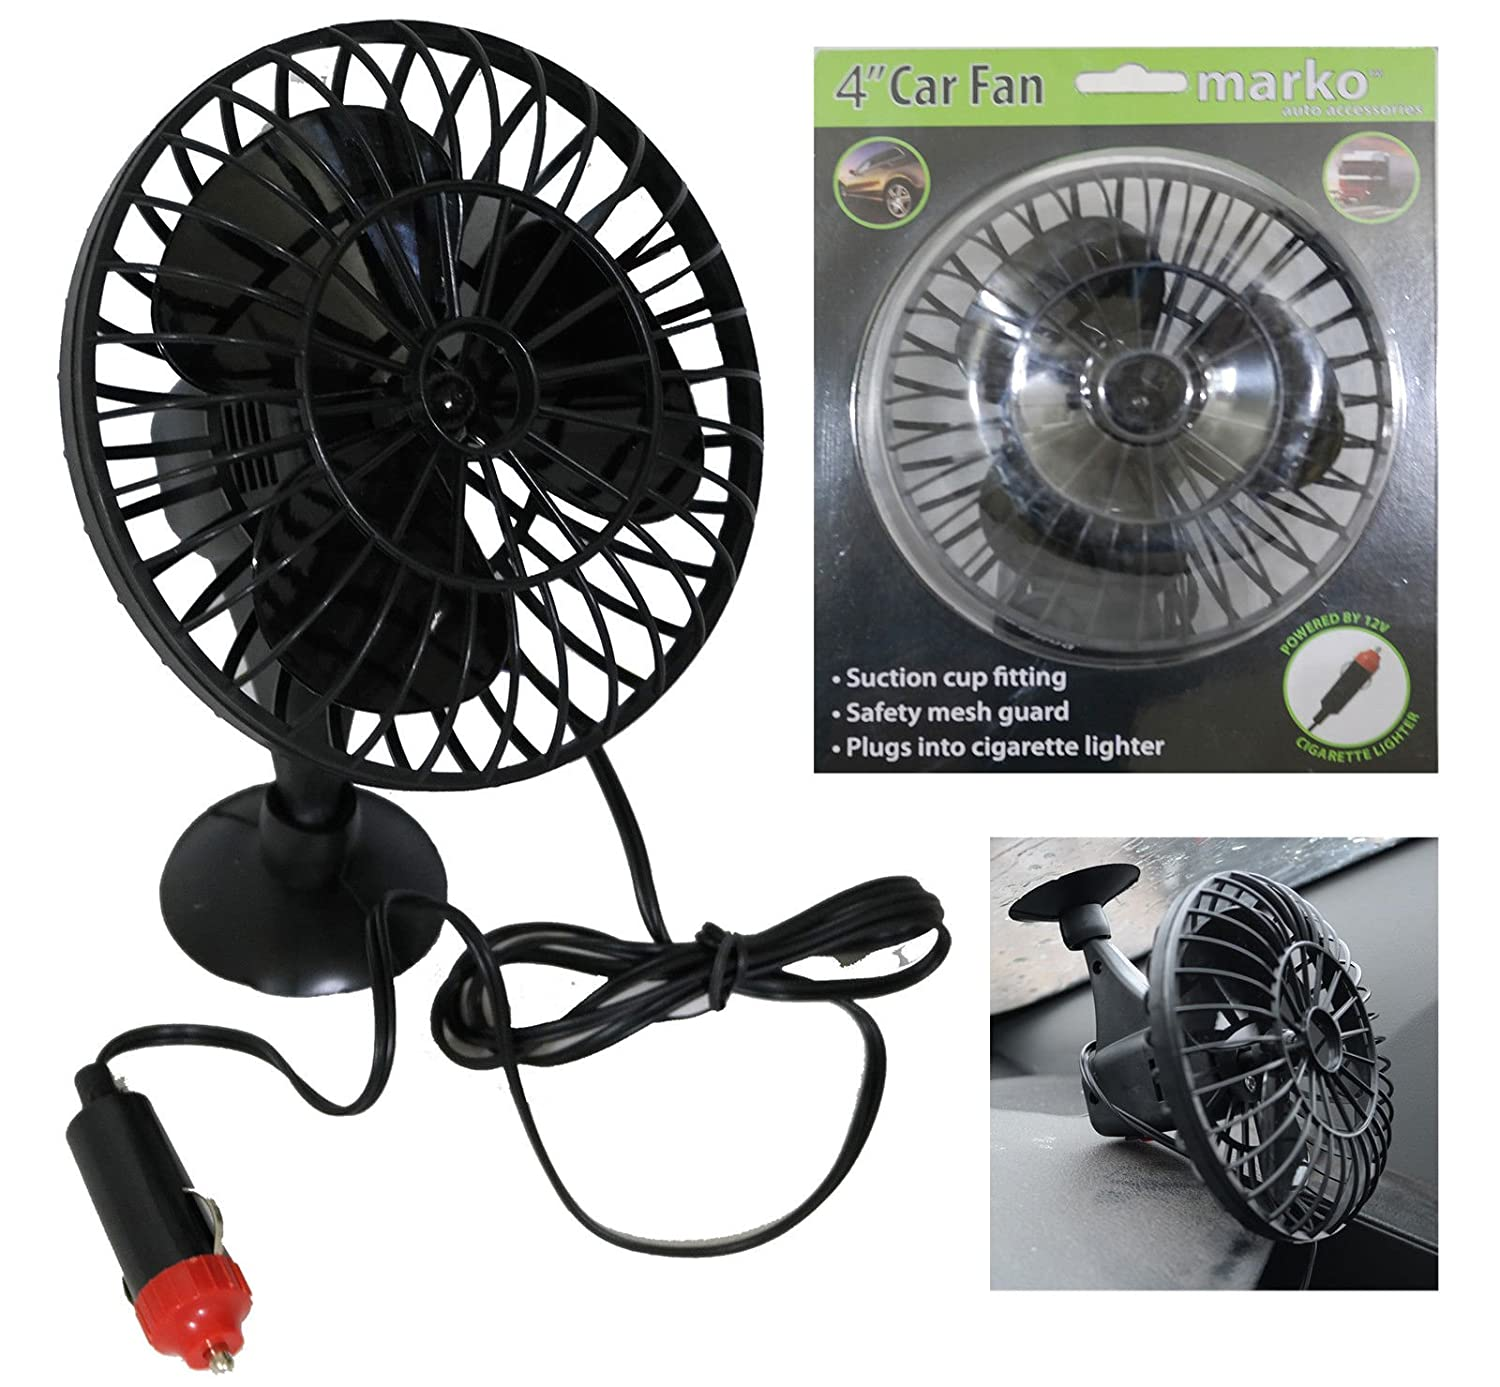 Marko Electrical Fan Pedestal Fans Oscillating Stand Desk Electric Home Tower Office Standing UK (4